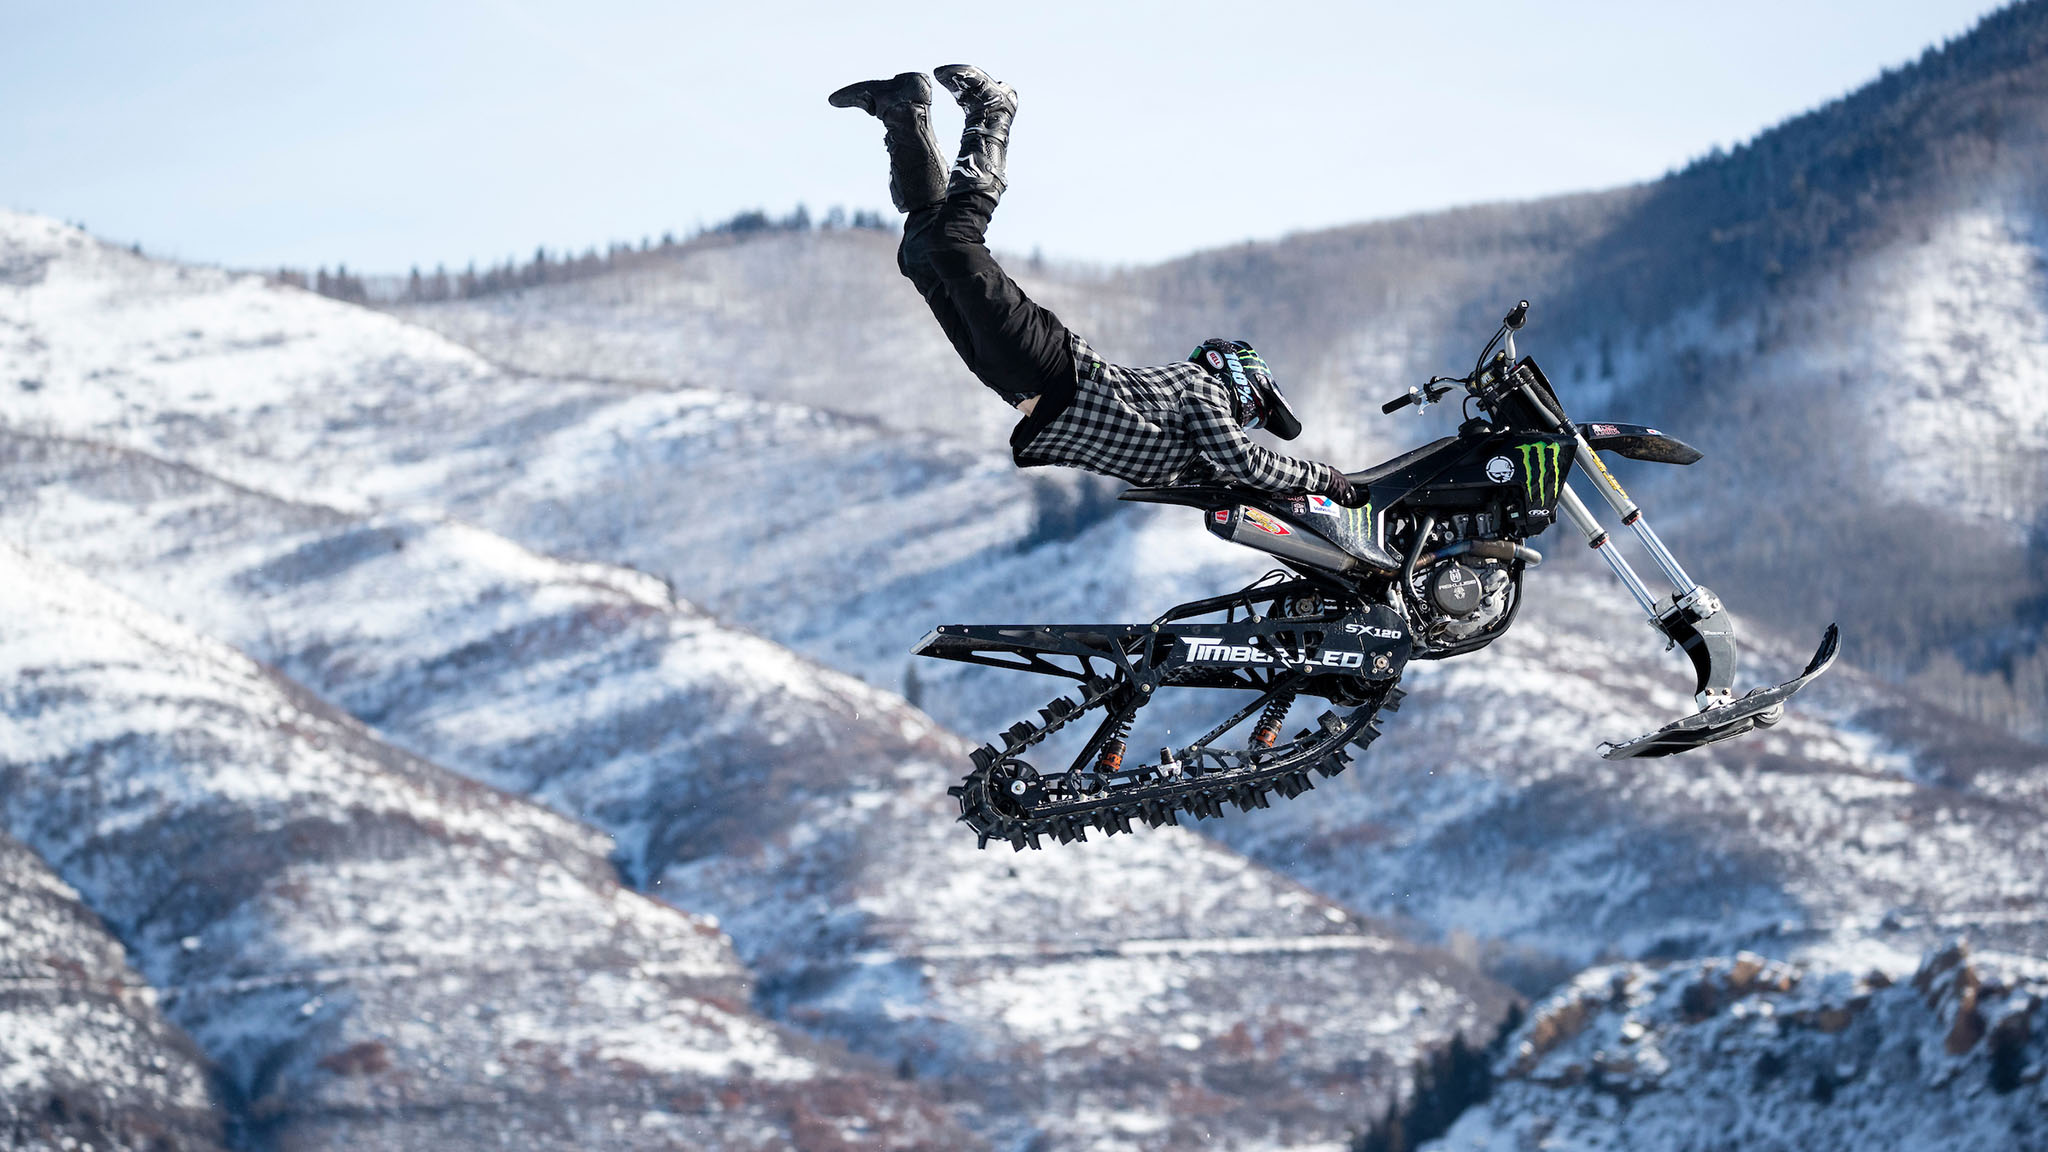 New for X Games Aspen 2018 is the addition of SnowBike Best Trick.